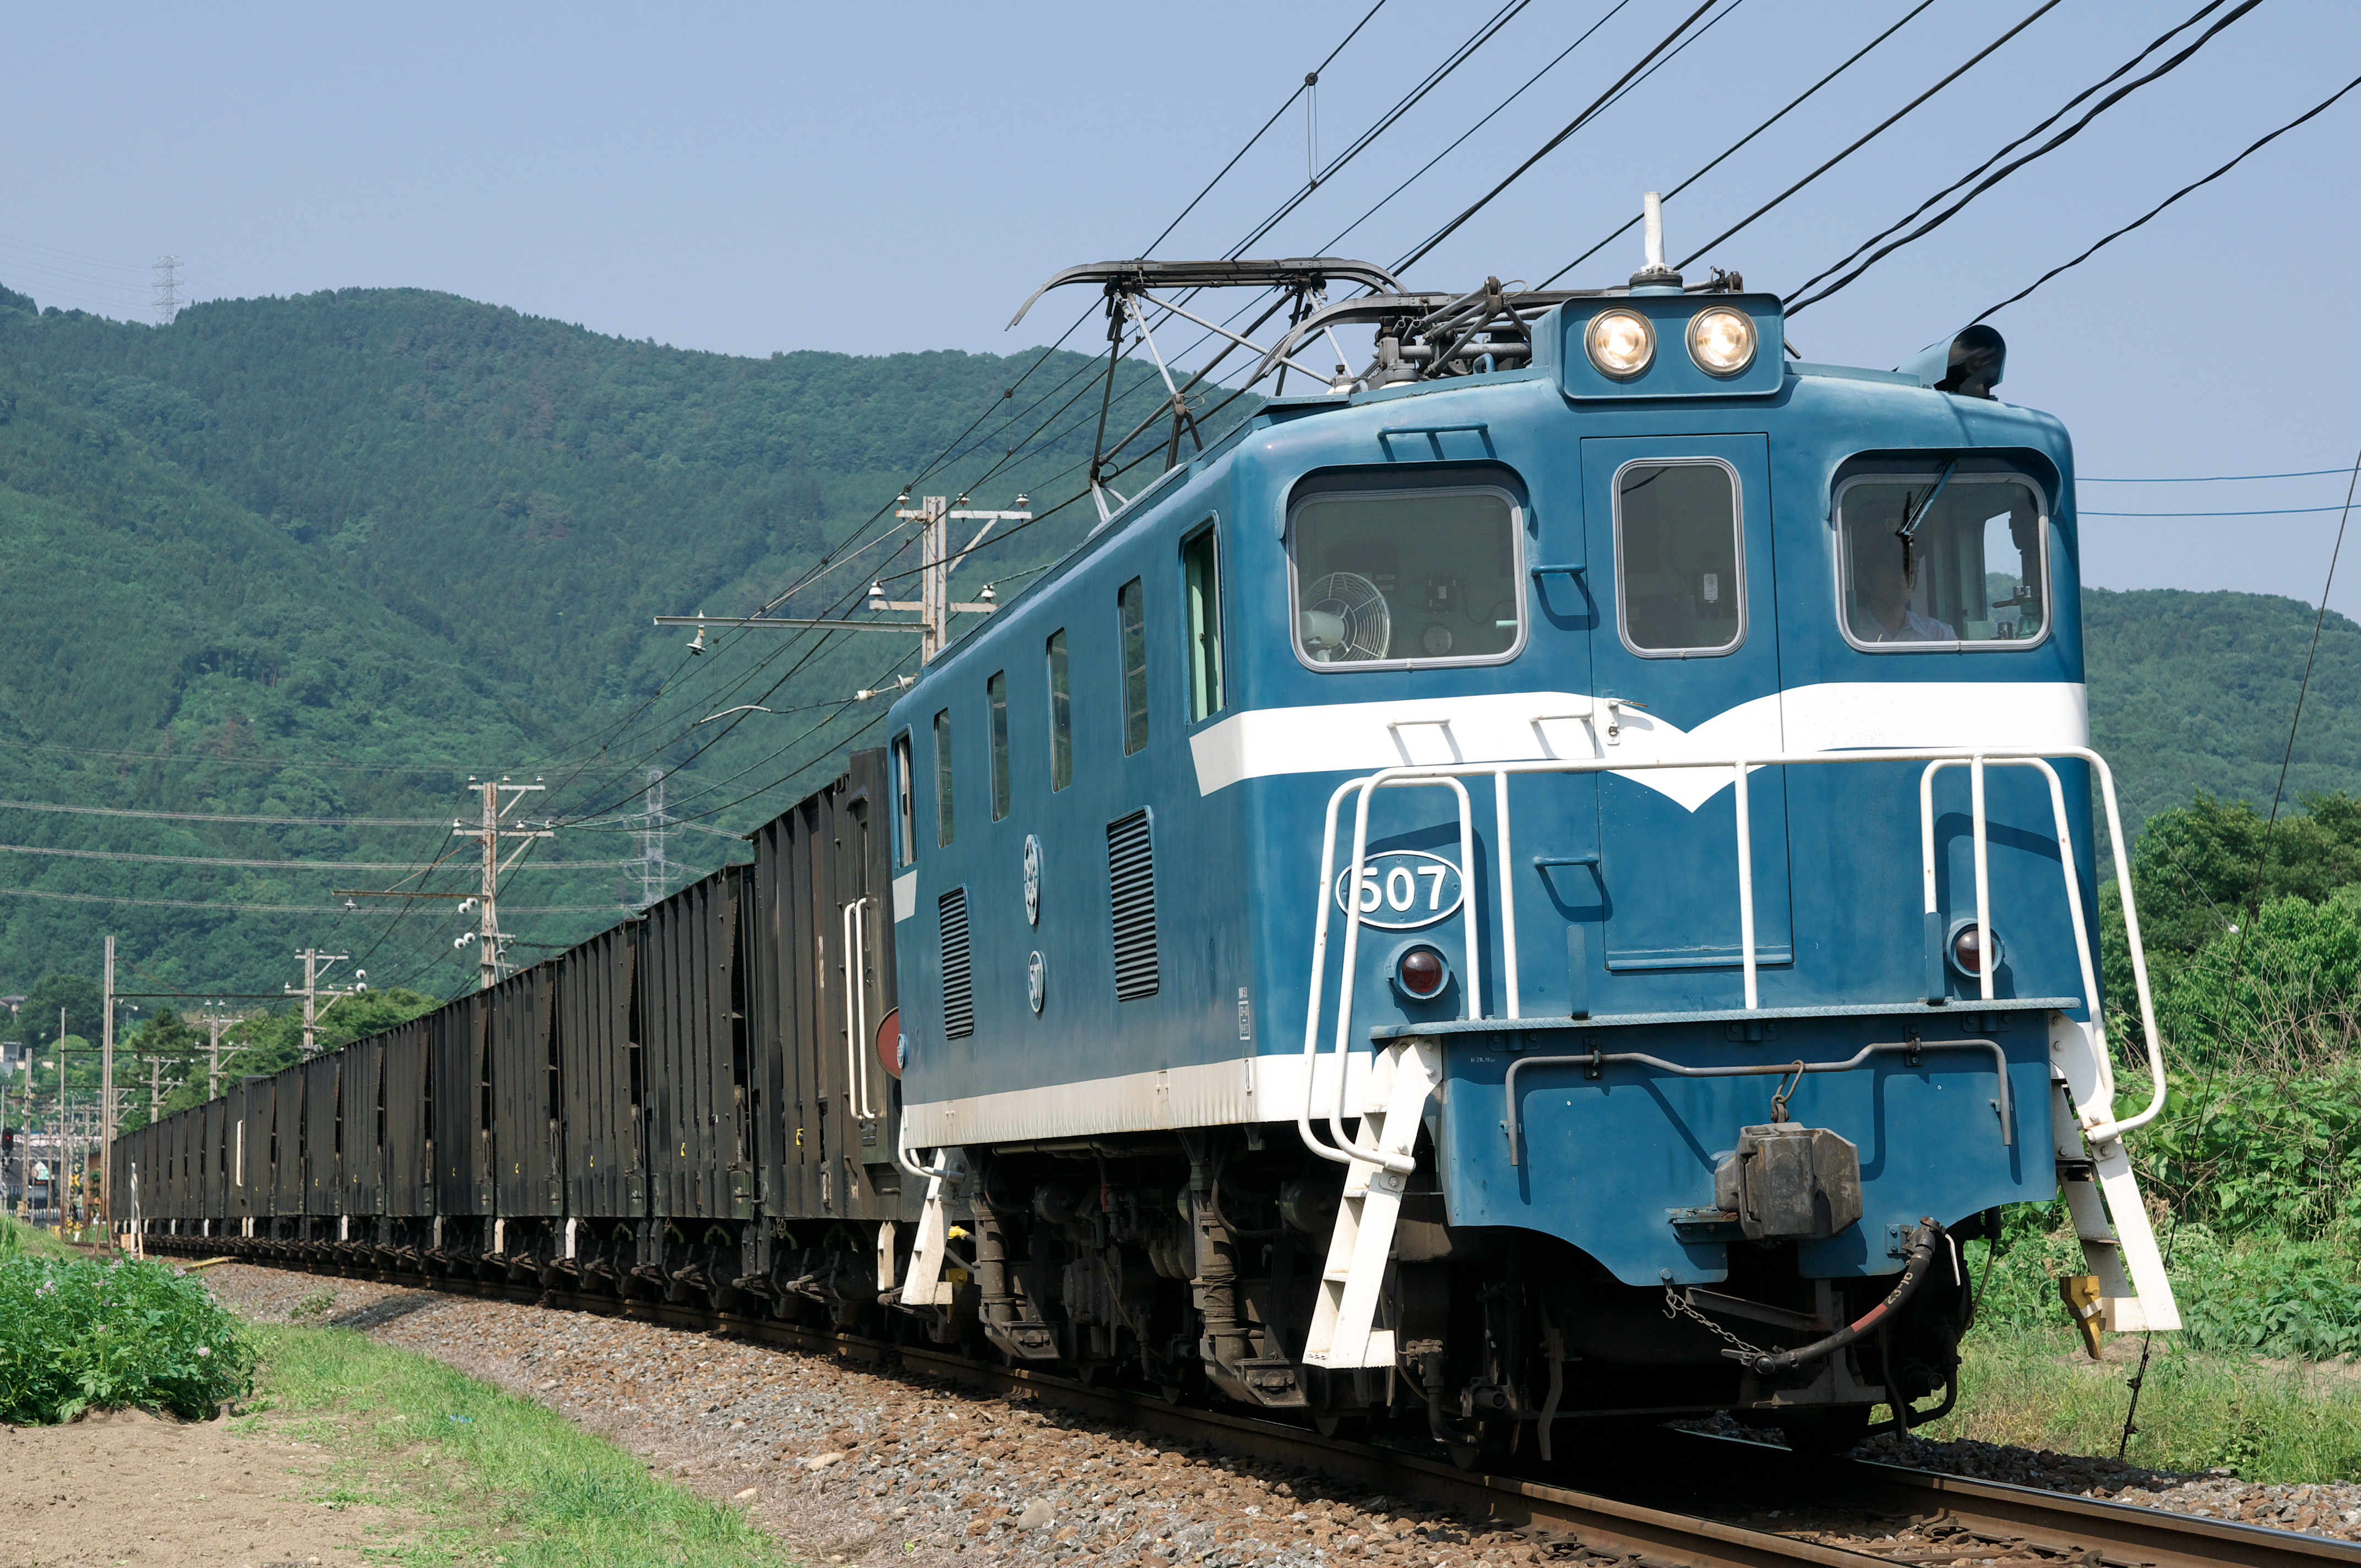 https://upload.wikimedia.org/wikipedia/commons/9/93/Chichibu_railway_deki507_20110606.jpg